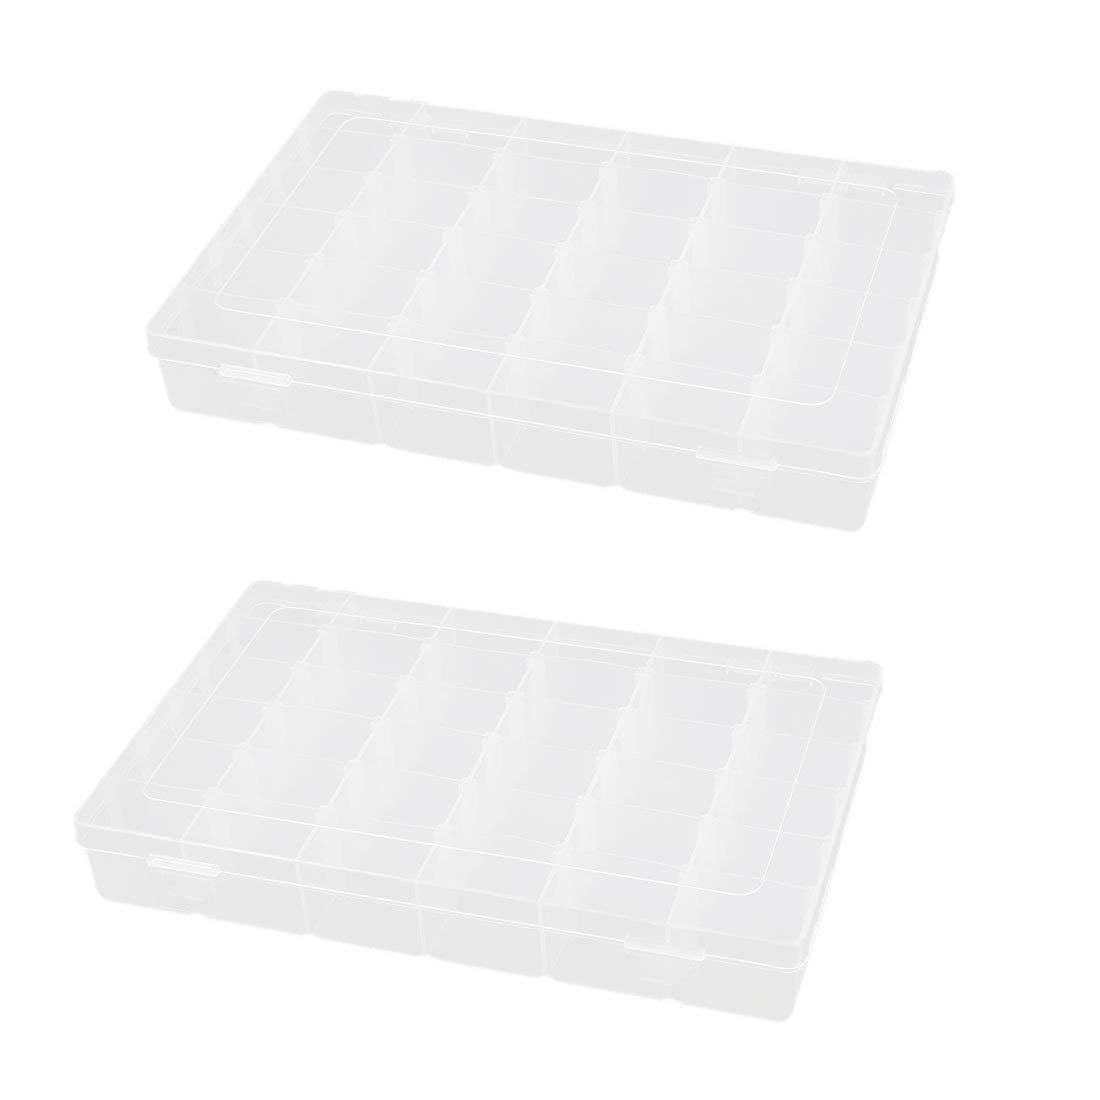 Aexit Plastic 36 Tool Organizers Components Clip On Storage Holder Box Case 2pcs Tool Boxes Clear White